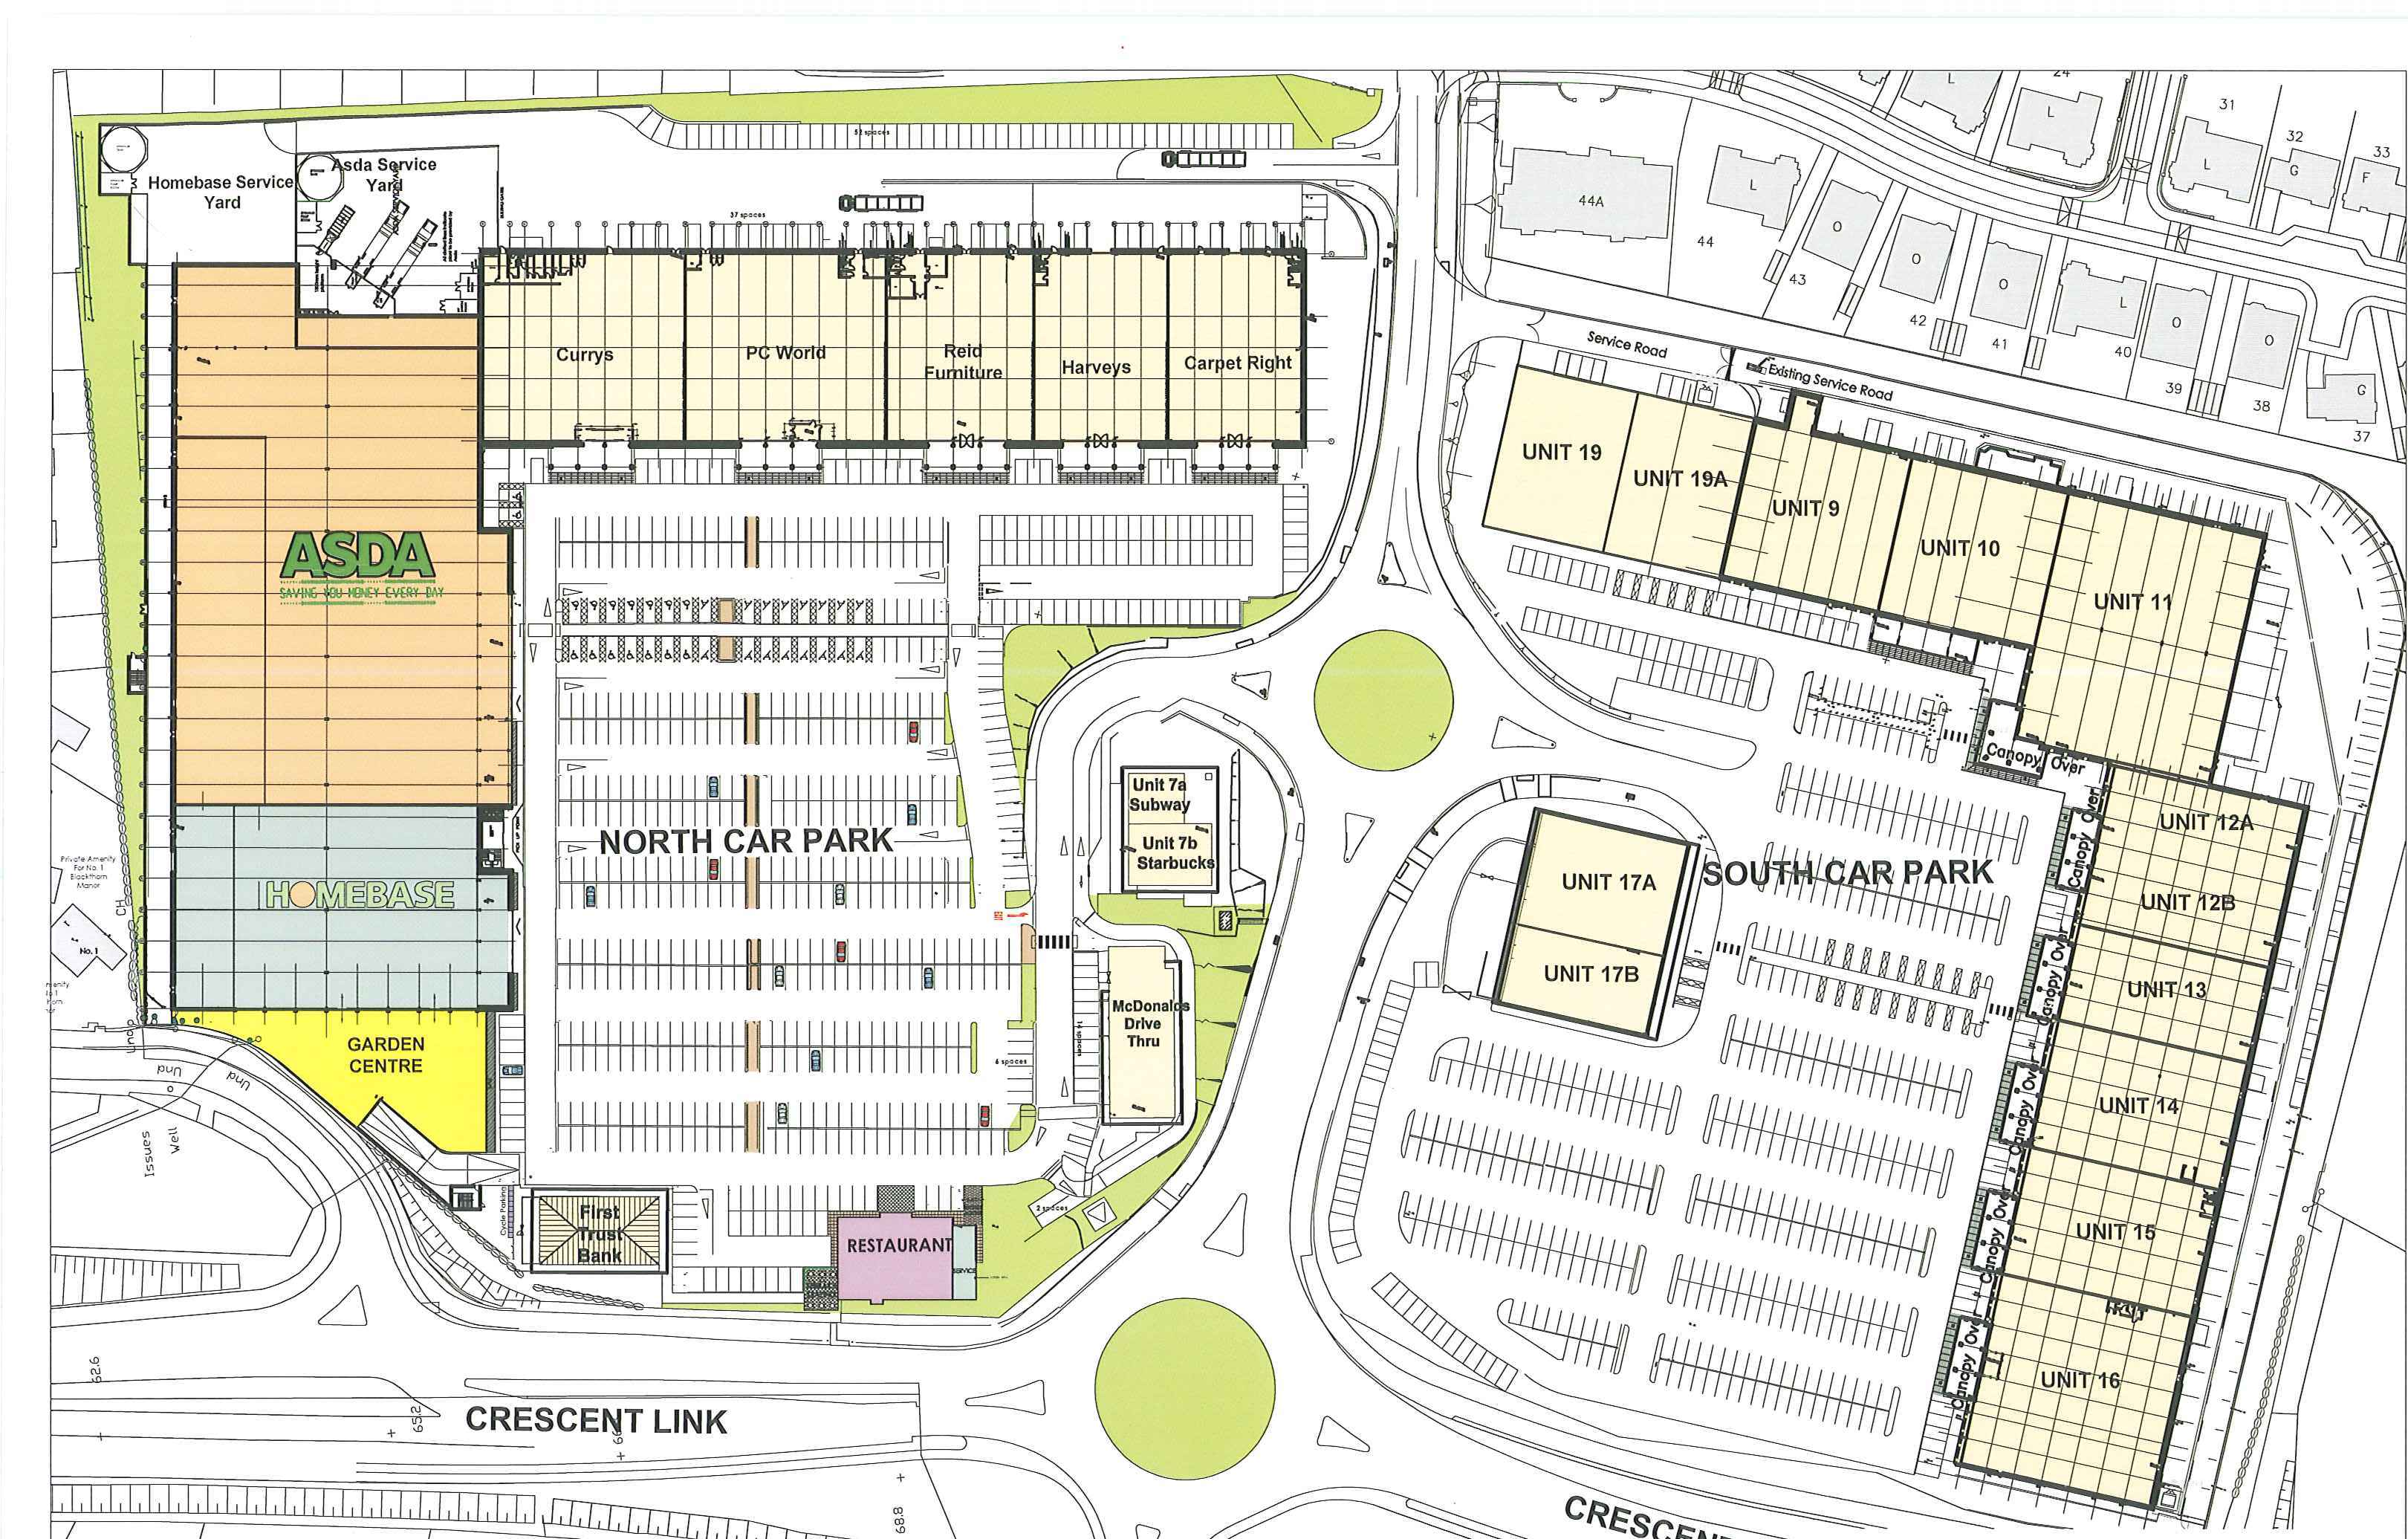 Site Plan - Crescent Link Retail Park, Derry